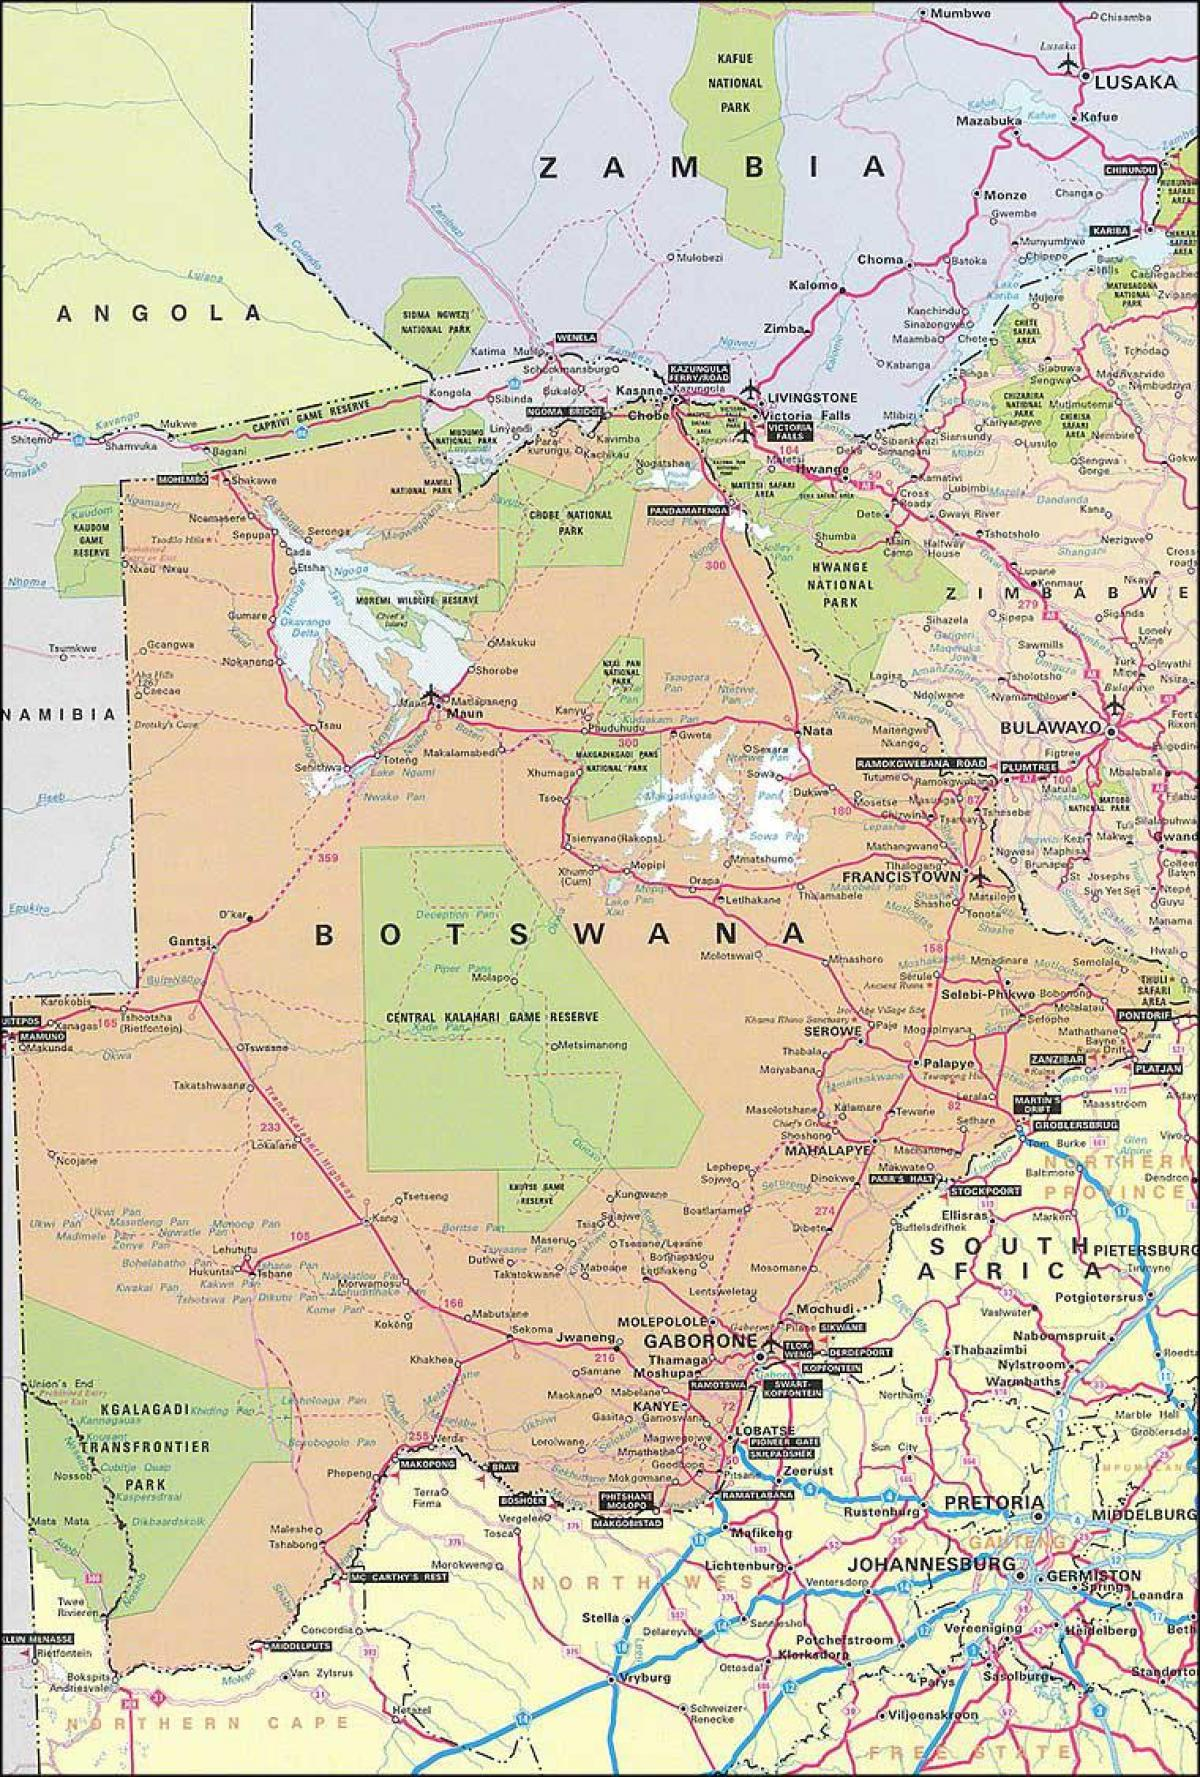 Botswana South Africa Map.Botswana Map The Map Of Botswana Southern Africa Africa